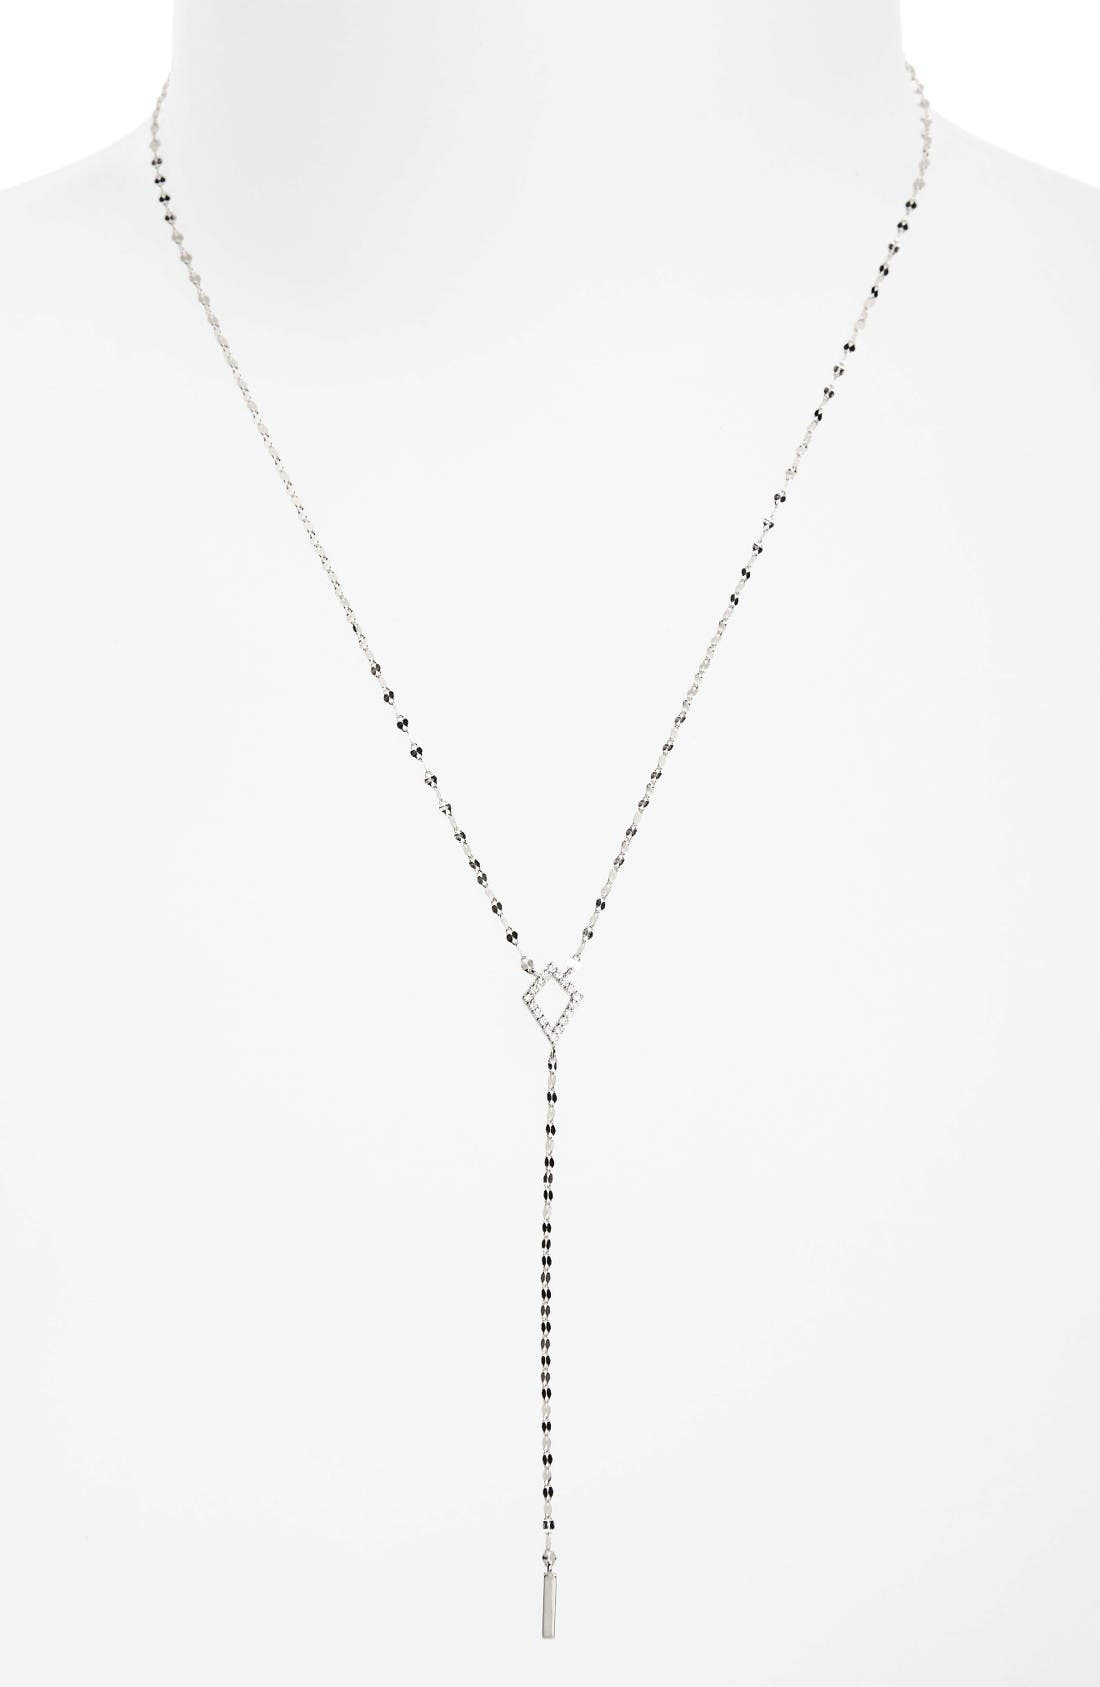 Lana Jewelry Flawless Diamond Kite Y-Necklace